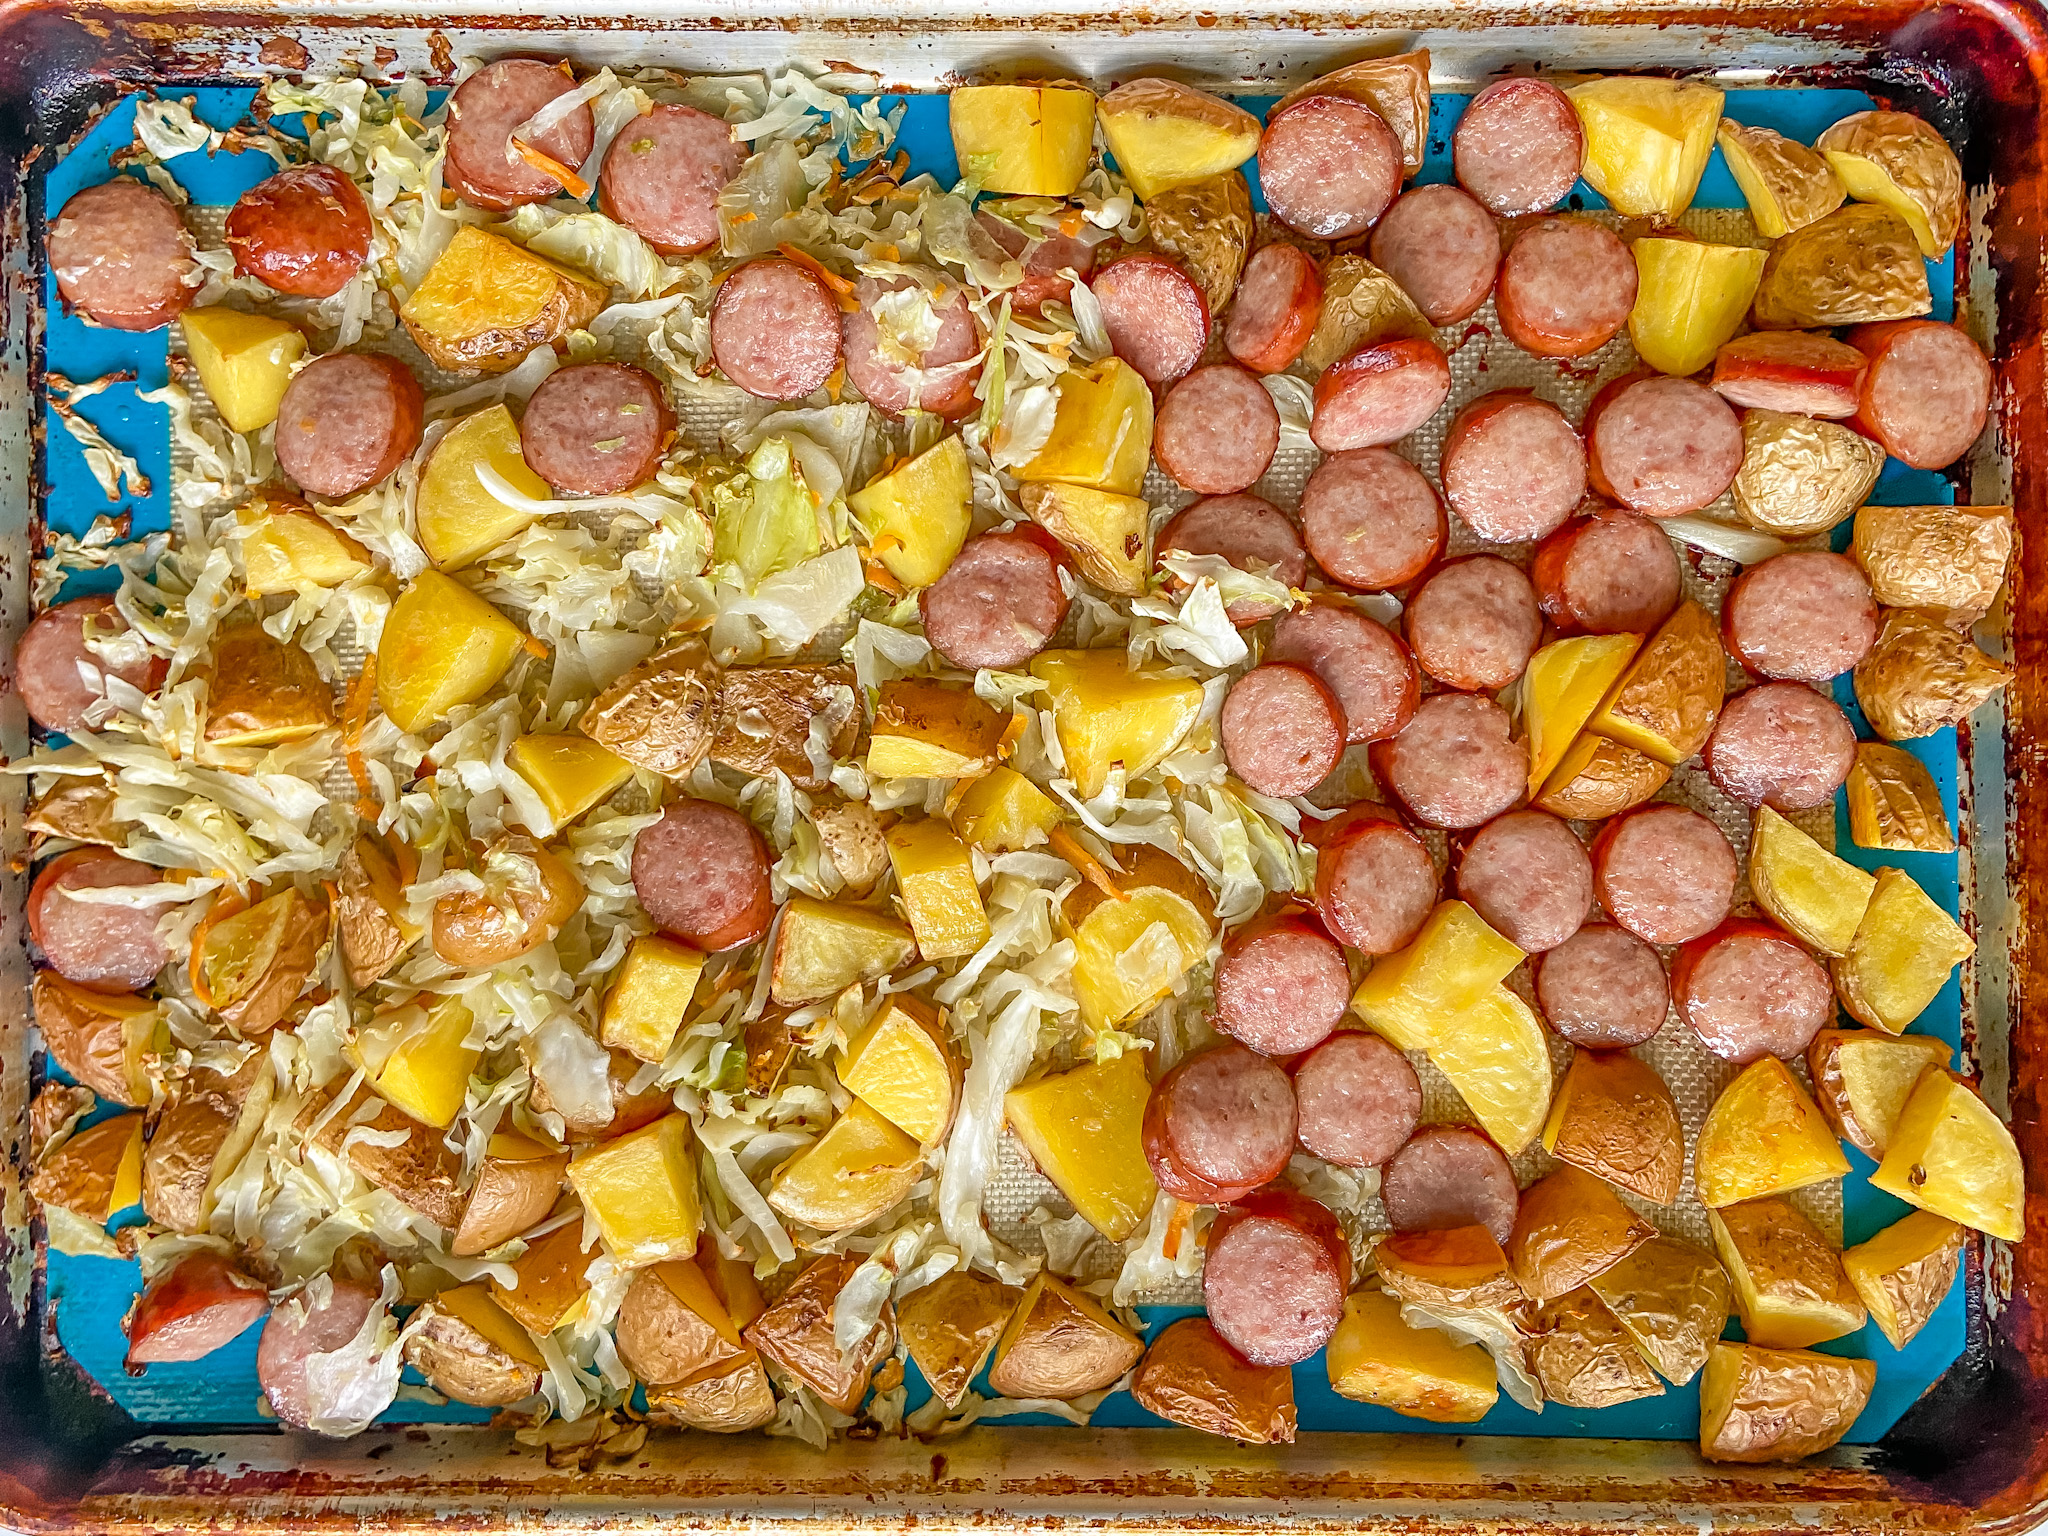 sheet pan meal with cooked kielbasa, potatoes, shredded cabbage